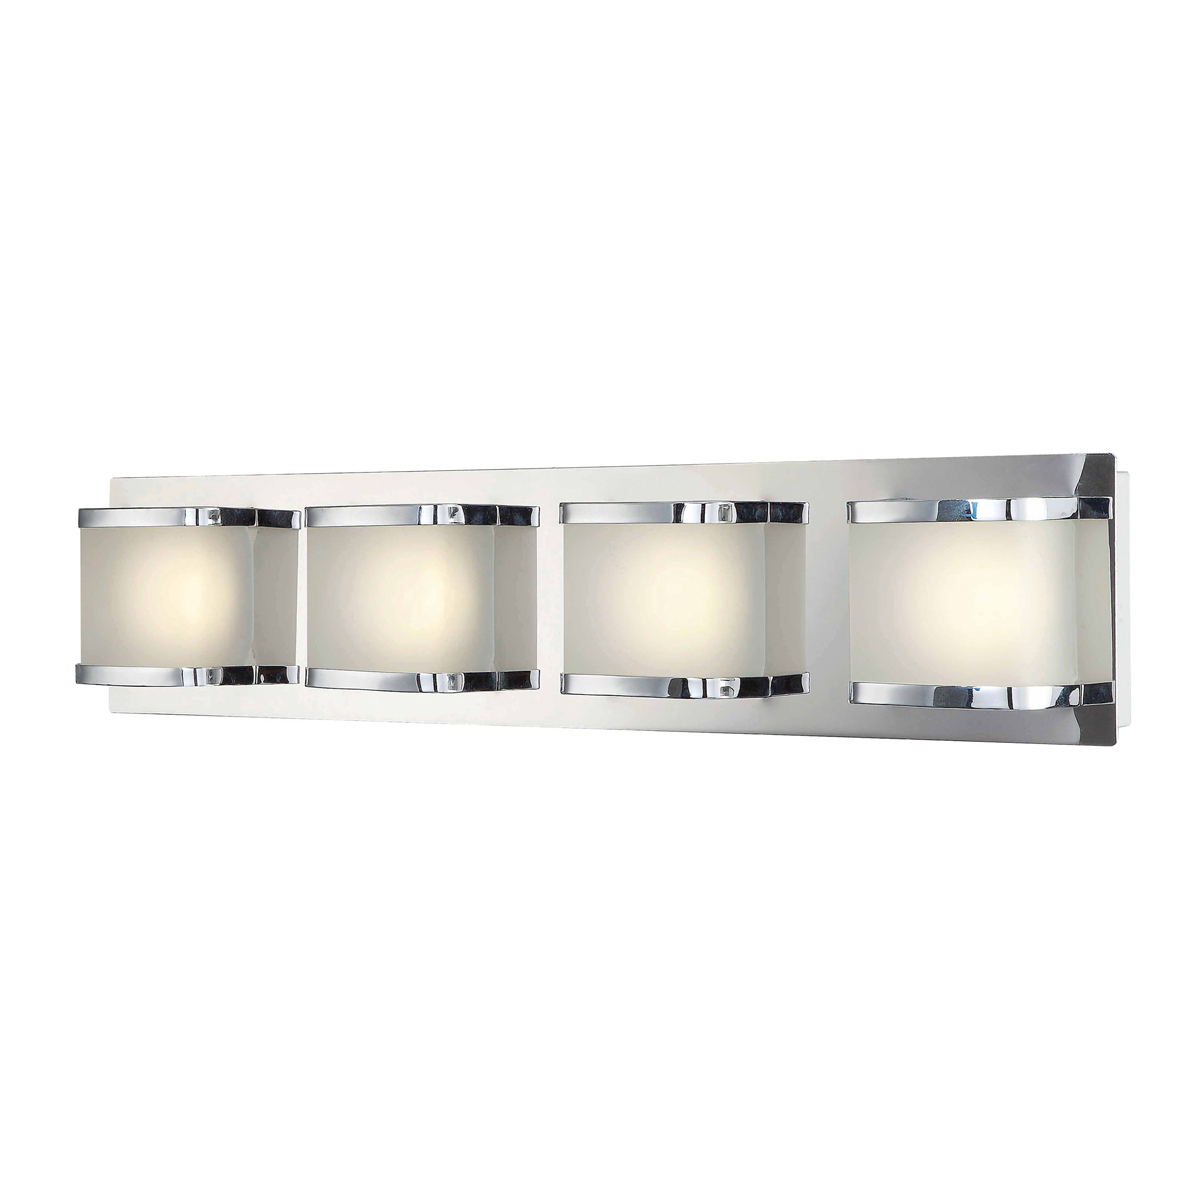 Vanity Led Fixtures : Alico Lighting (BVL4004-10-15) Bandeau 4 Light LED Vanity Fixture in Chrome